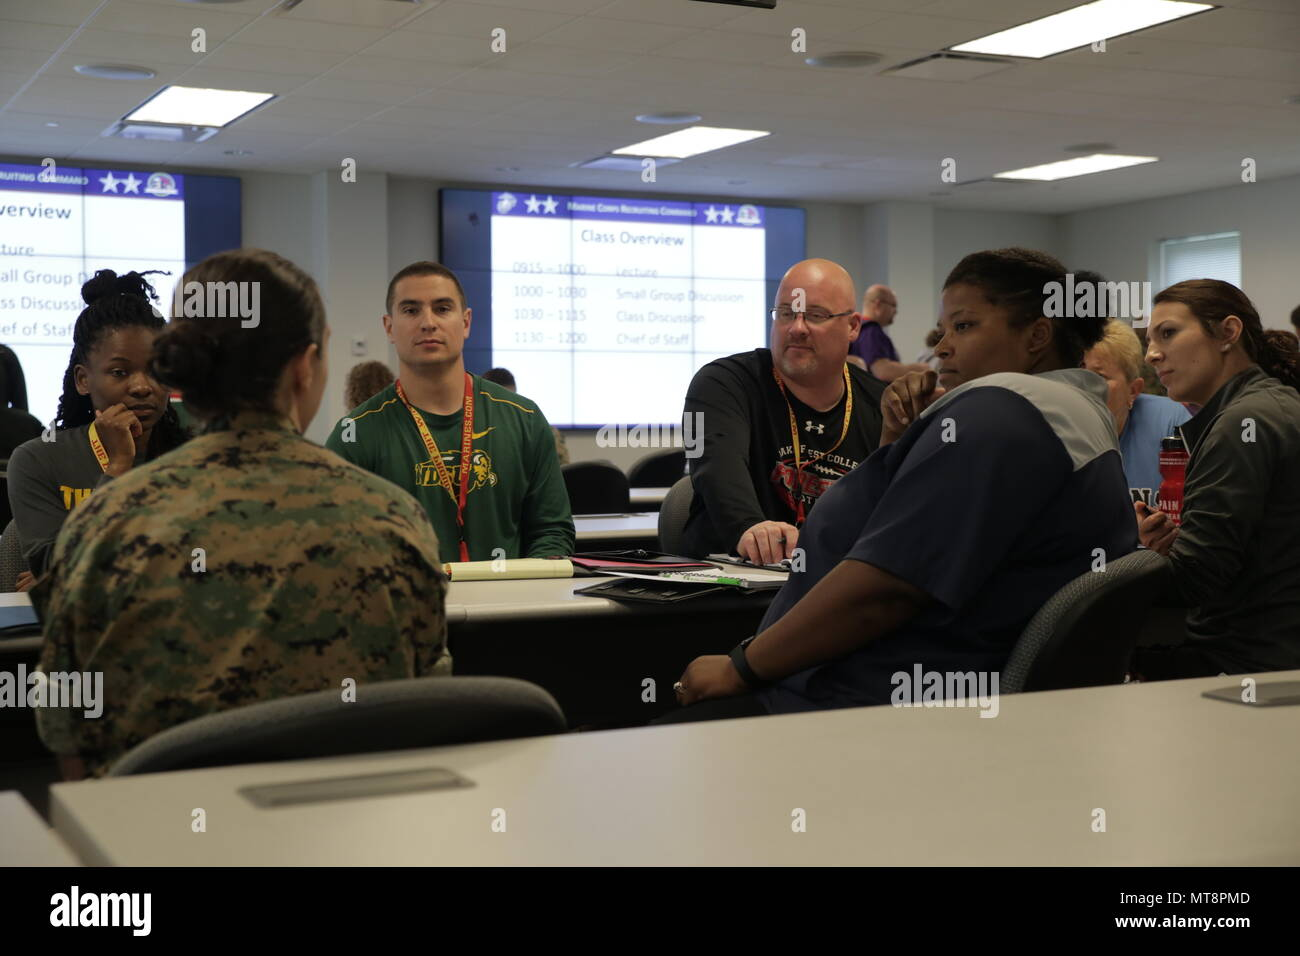 Coaches Discuss Leadership Traits That Coaches And Marines Share At